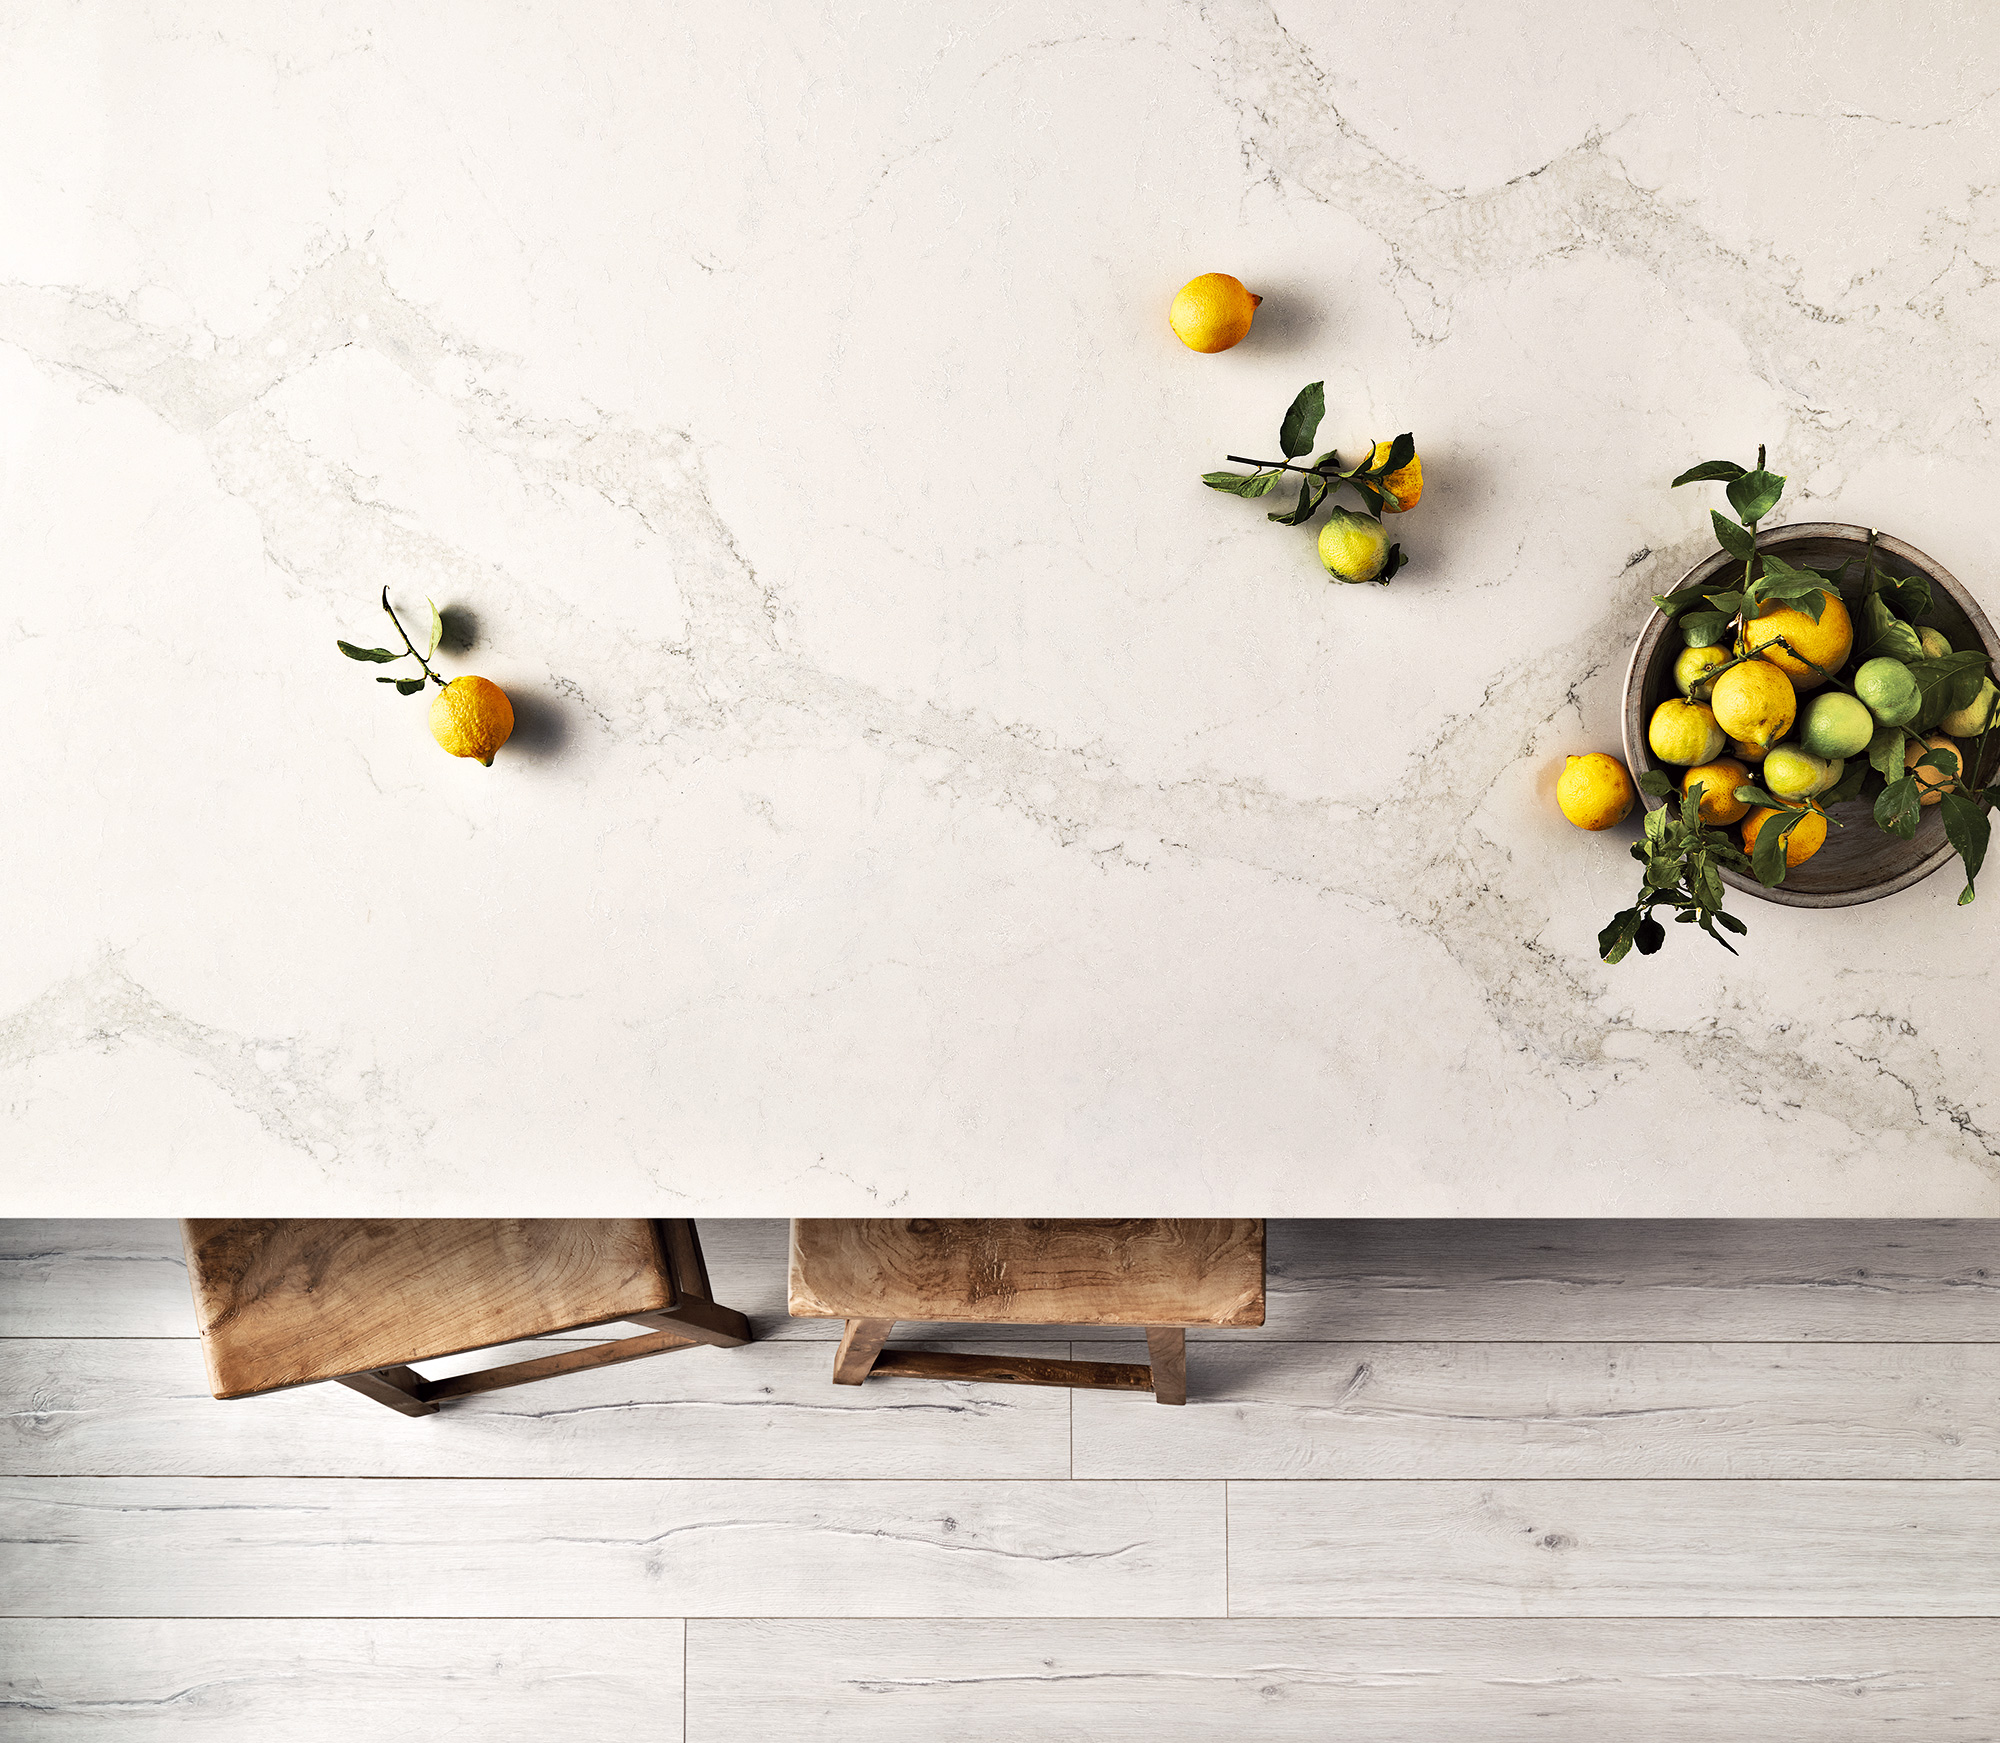 18 Caesarstone Surfaces for a Modern Environment